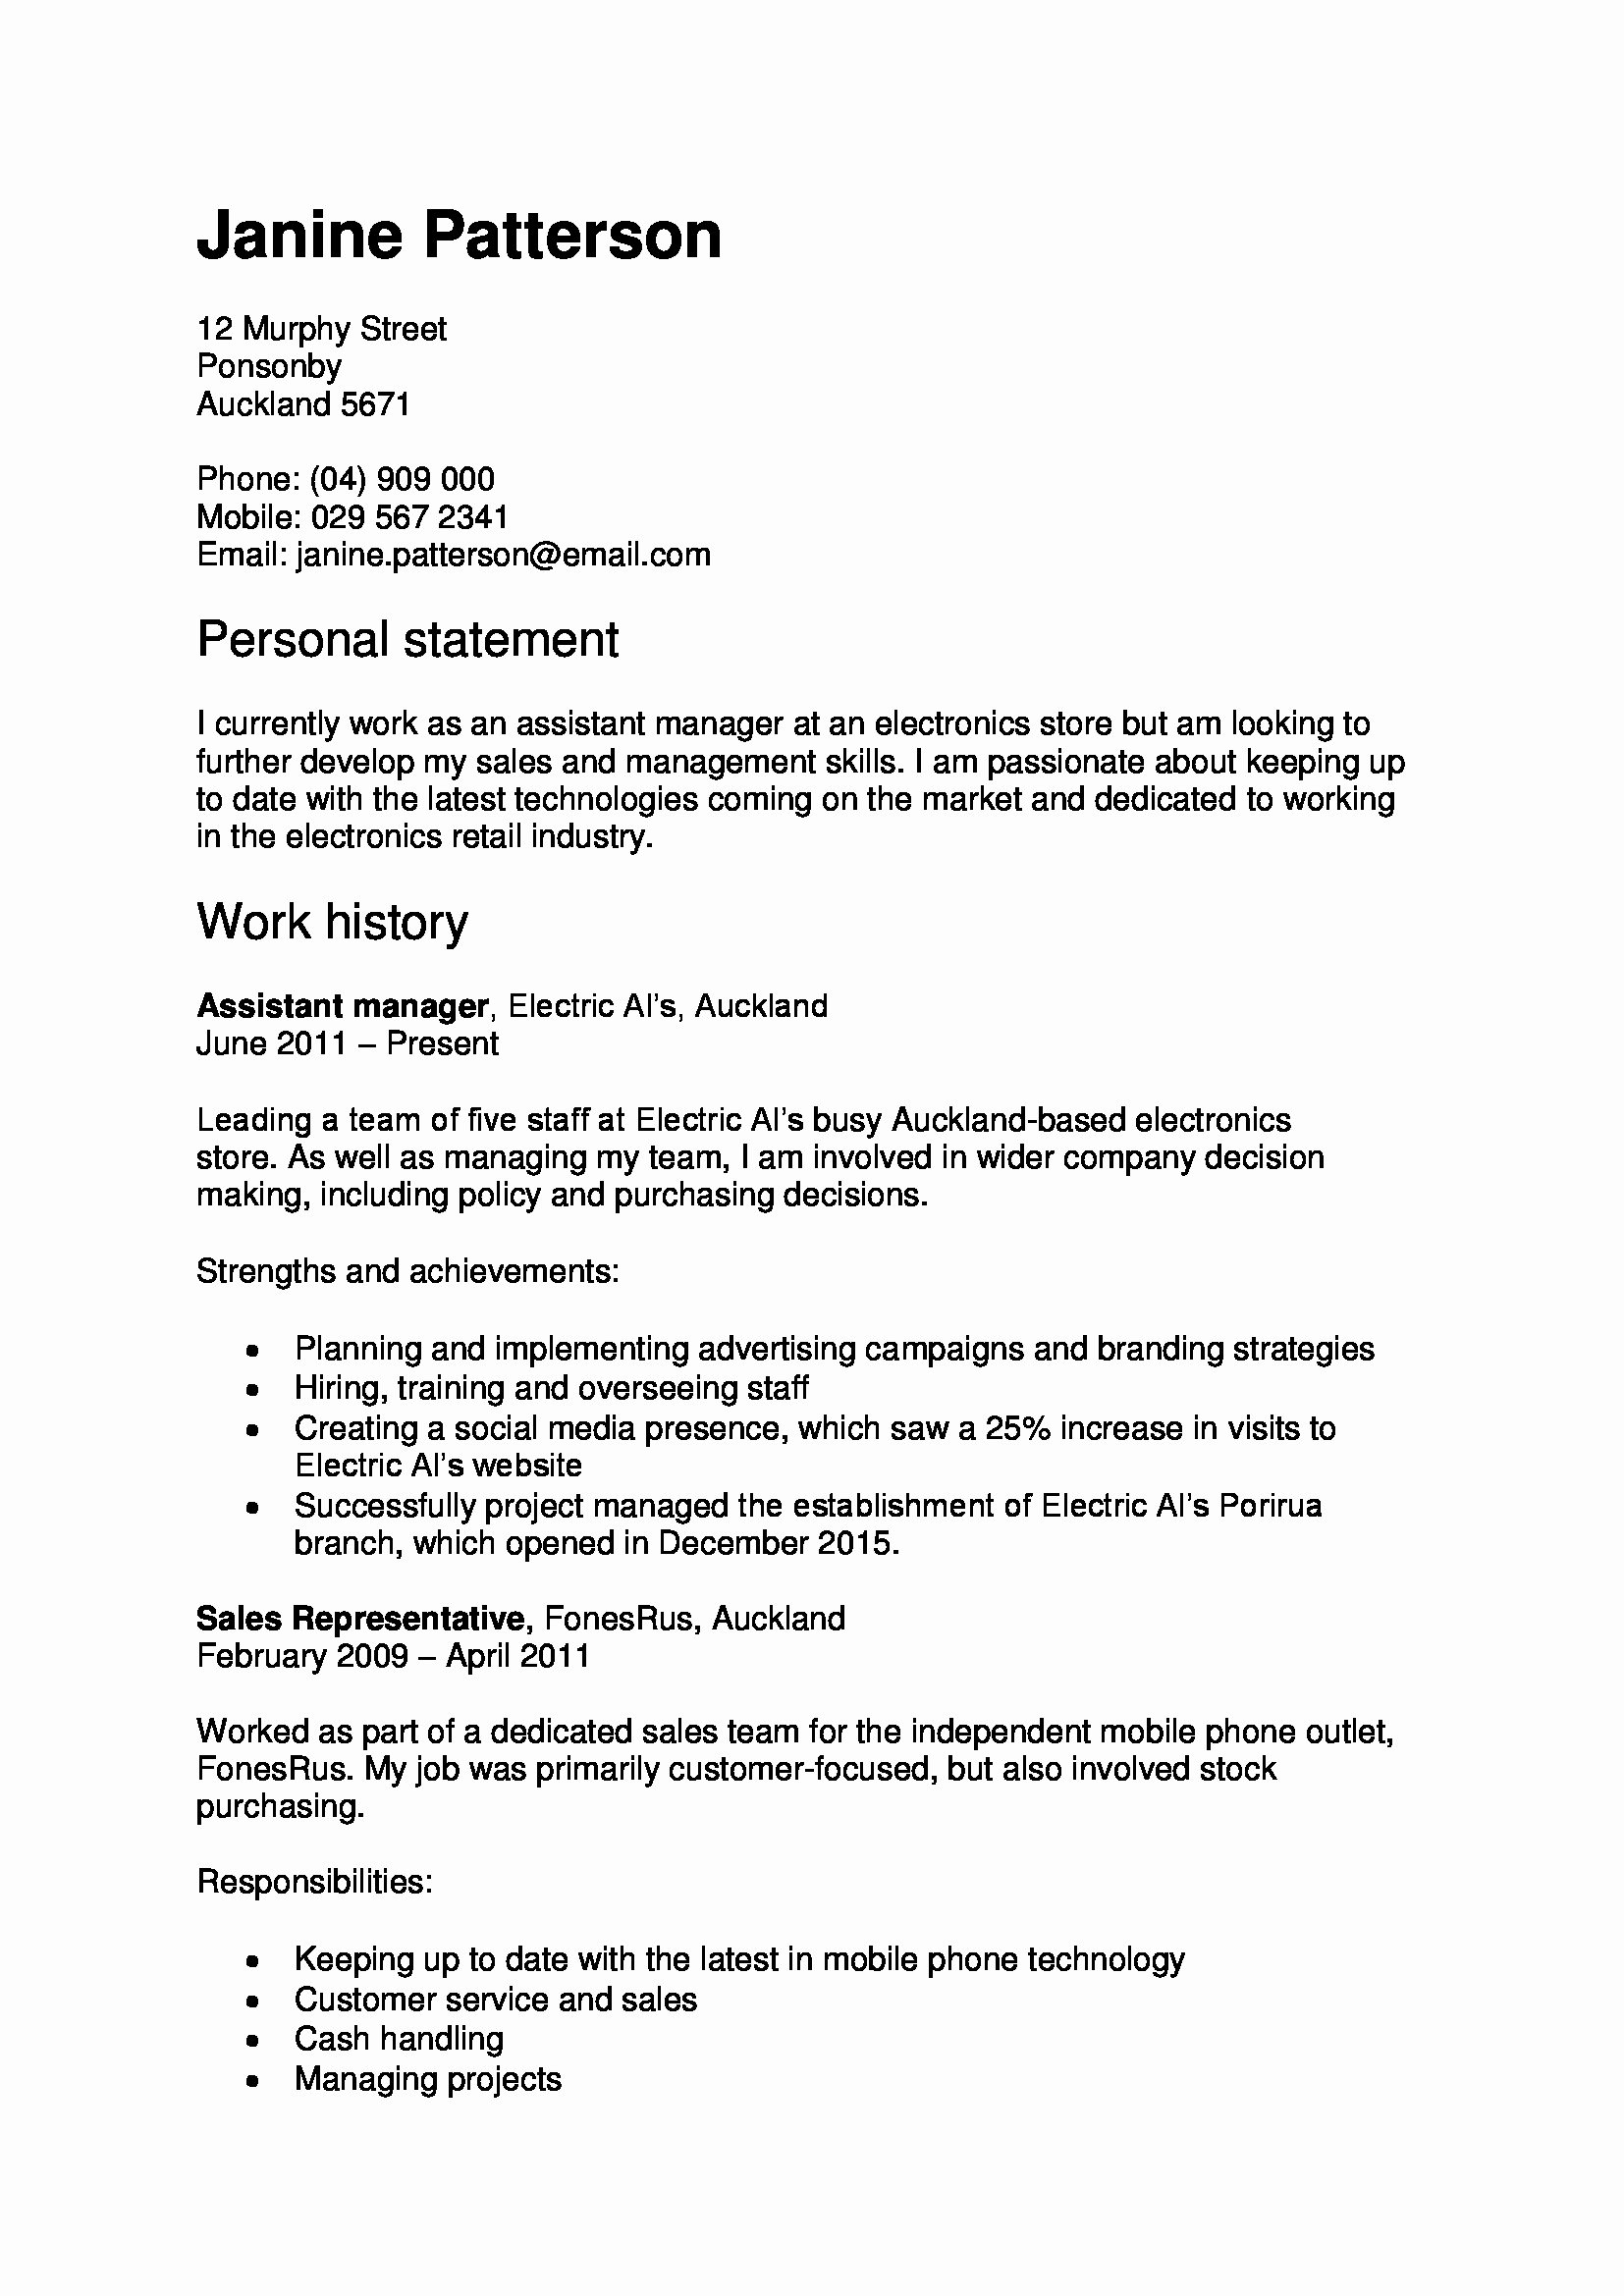 Handyman Resume Example - 23 Unique S Handyman Job Description for Resume